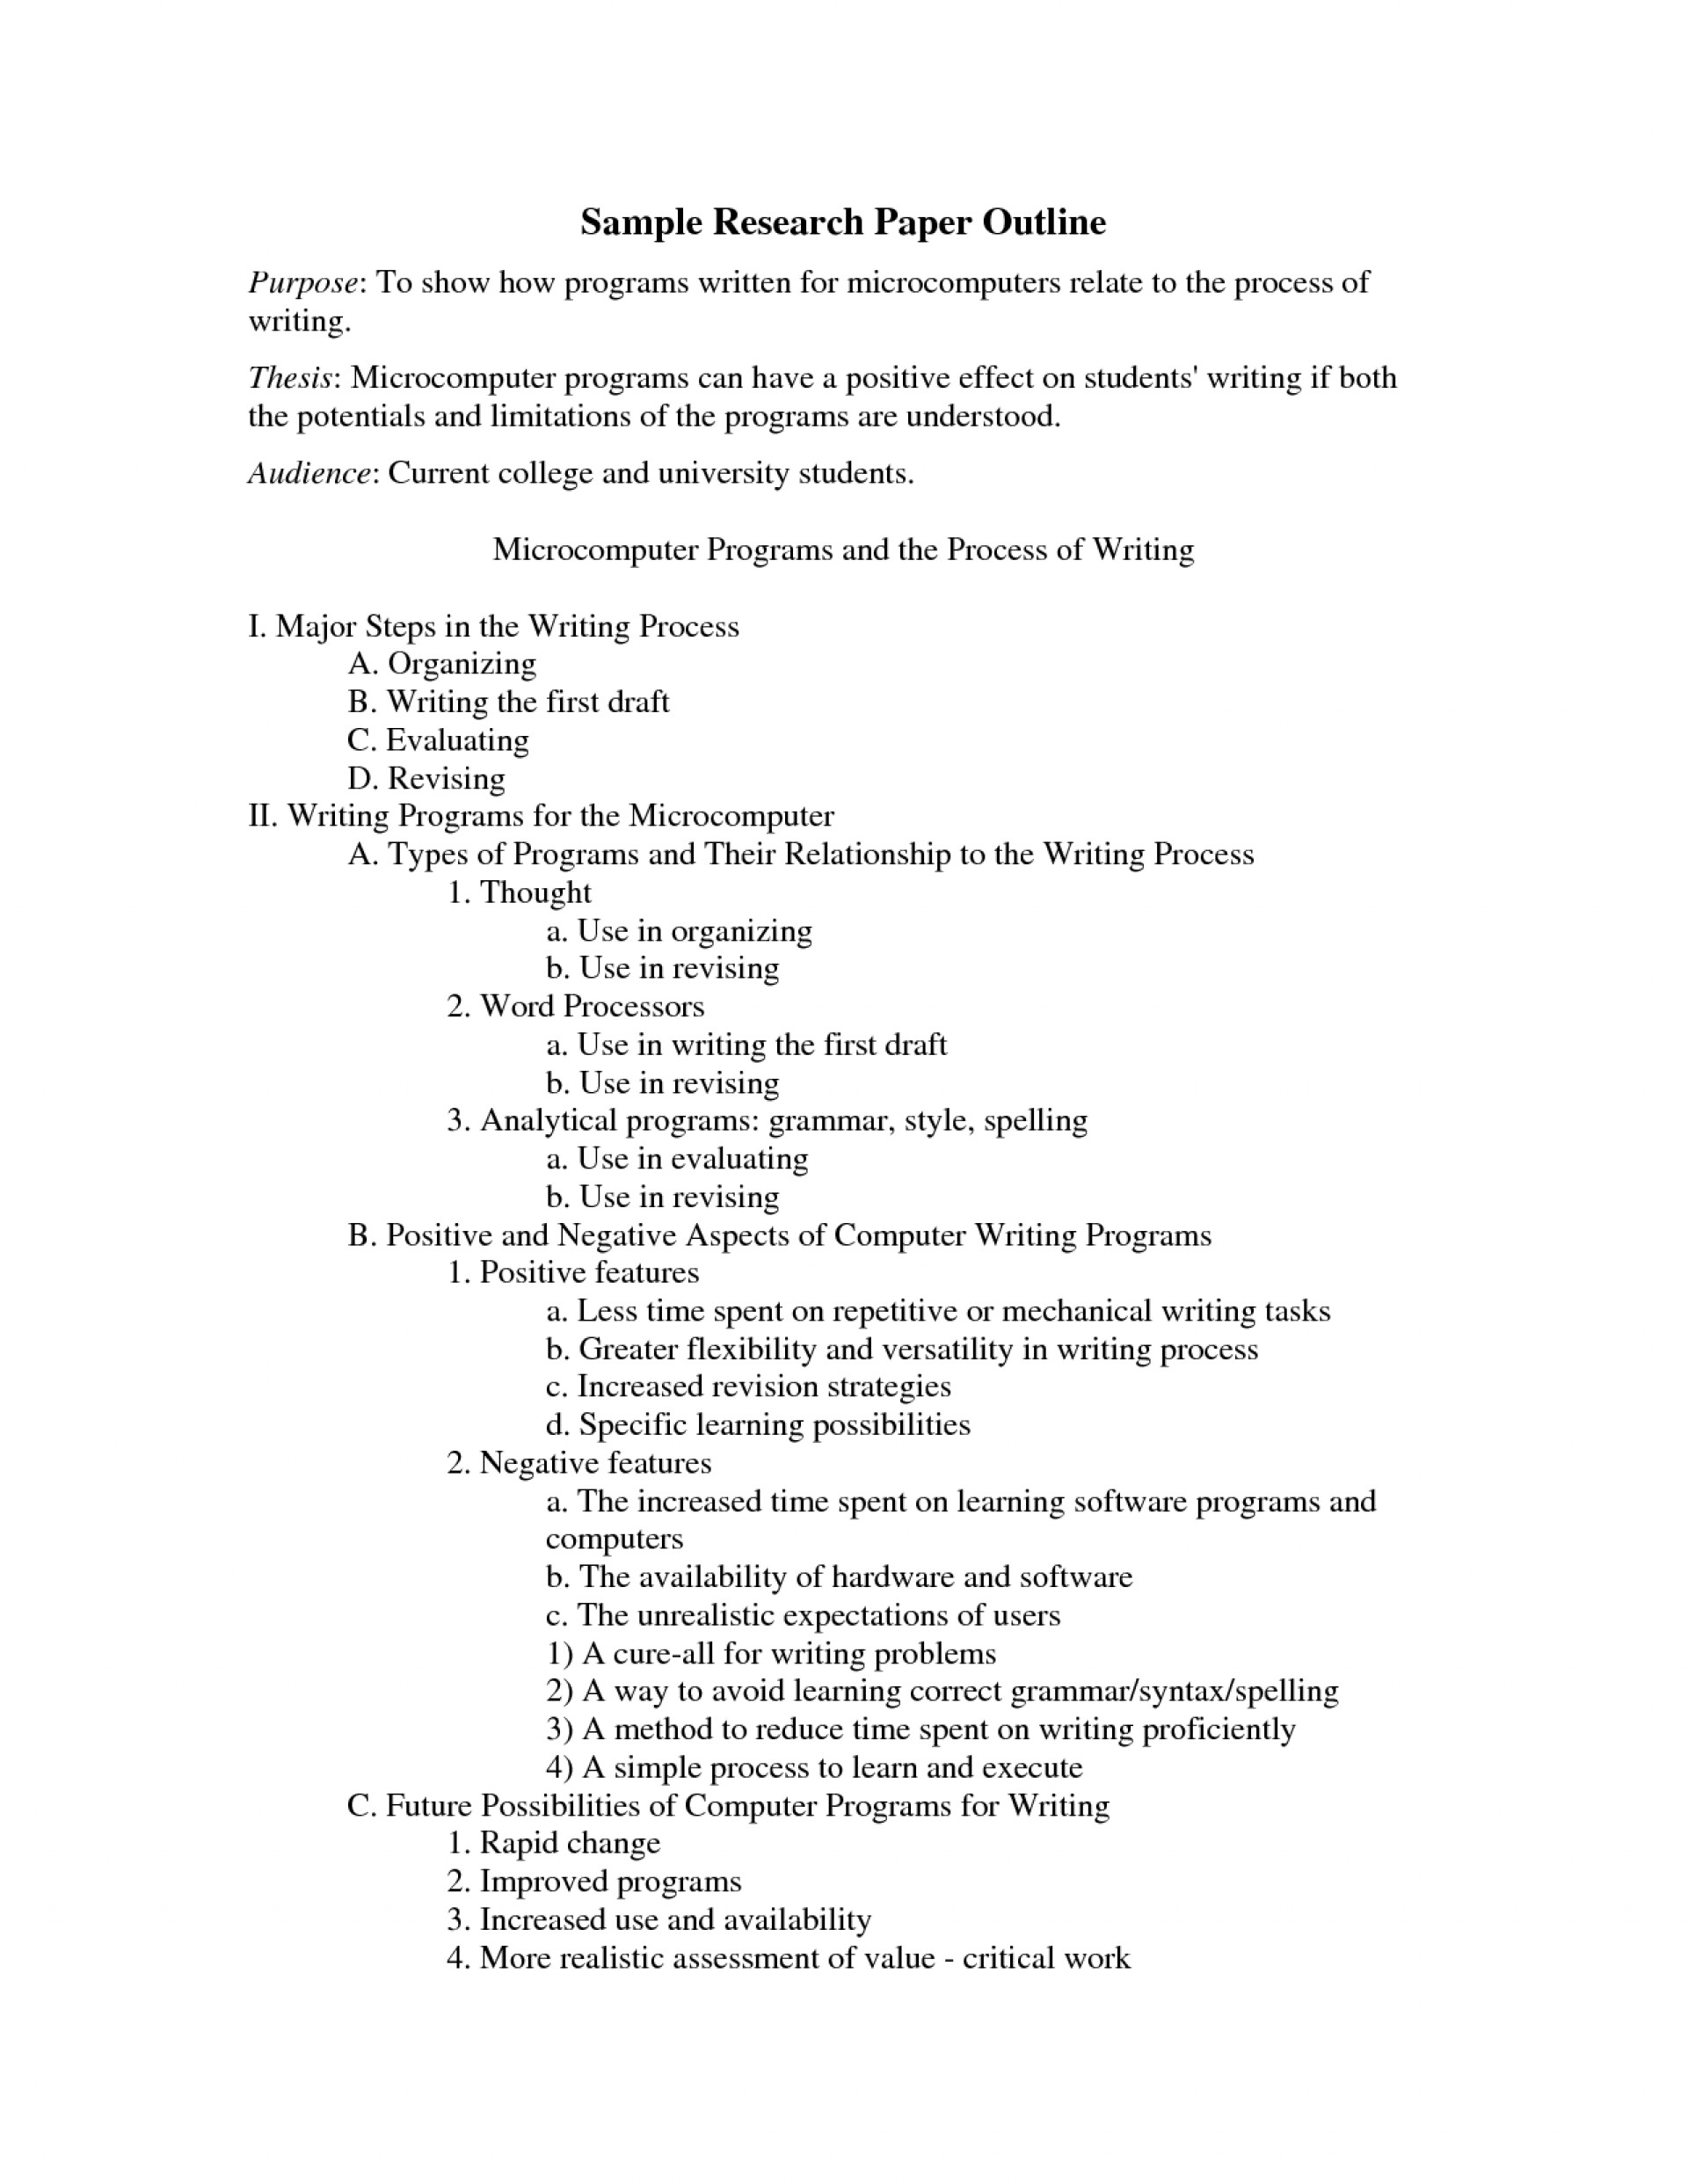 003 College Research Paper Outlines 477364 How To Do An For Stupendous Outline A Example Write Sample 1920